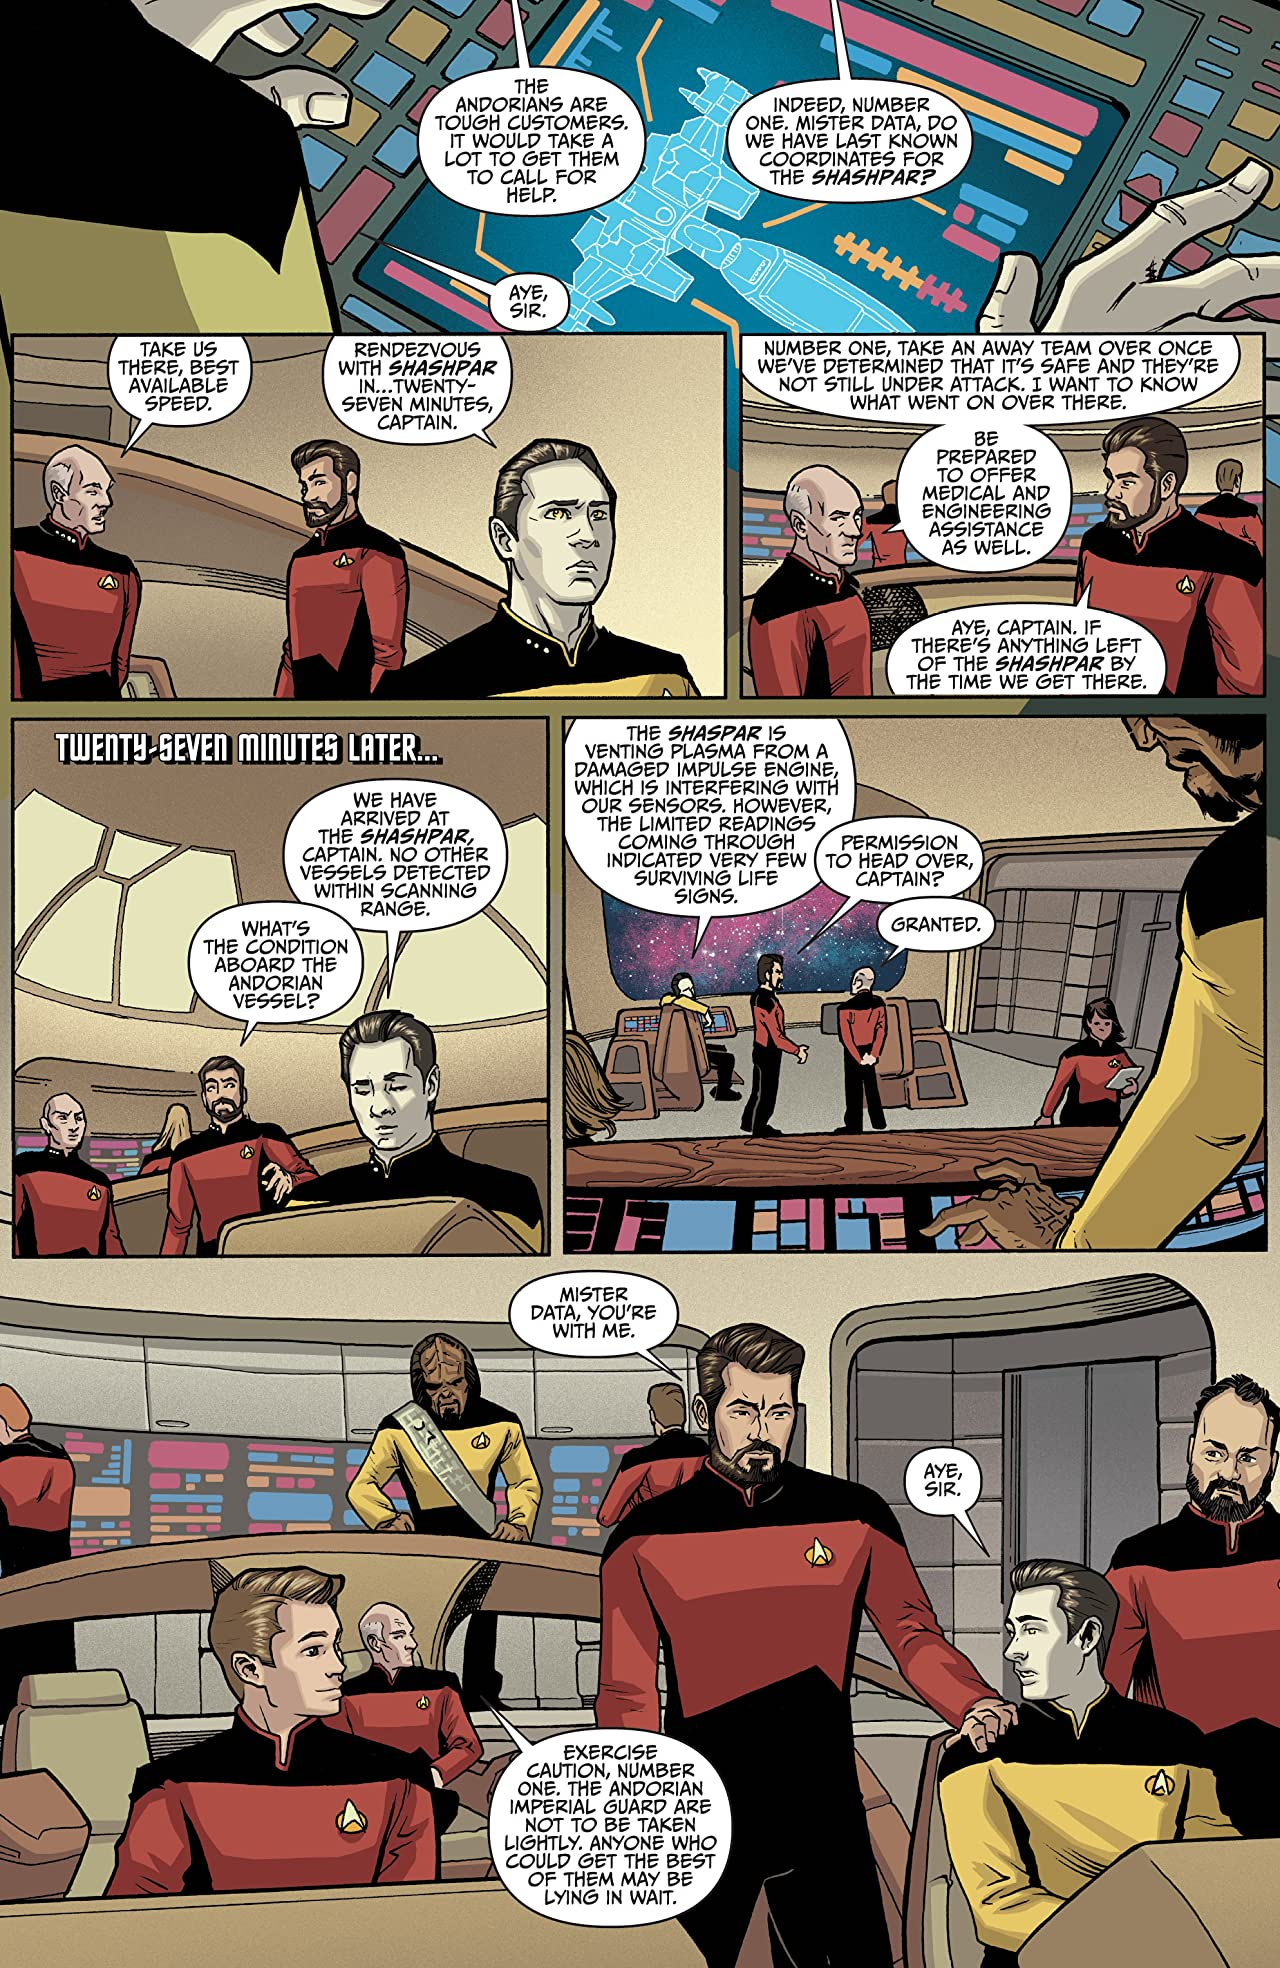 Star Trek: The Next Generation: Through The Mirror #2 (of 5)